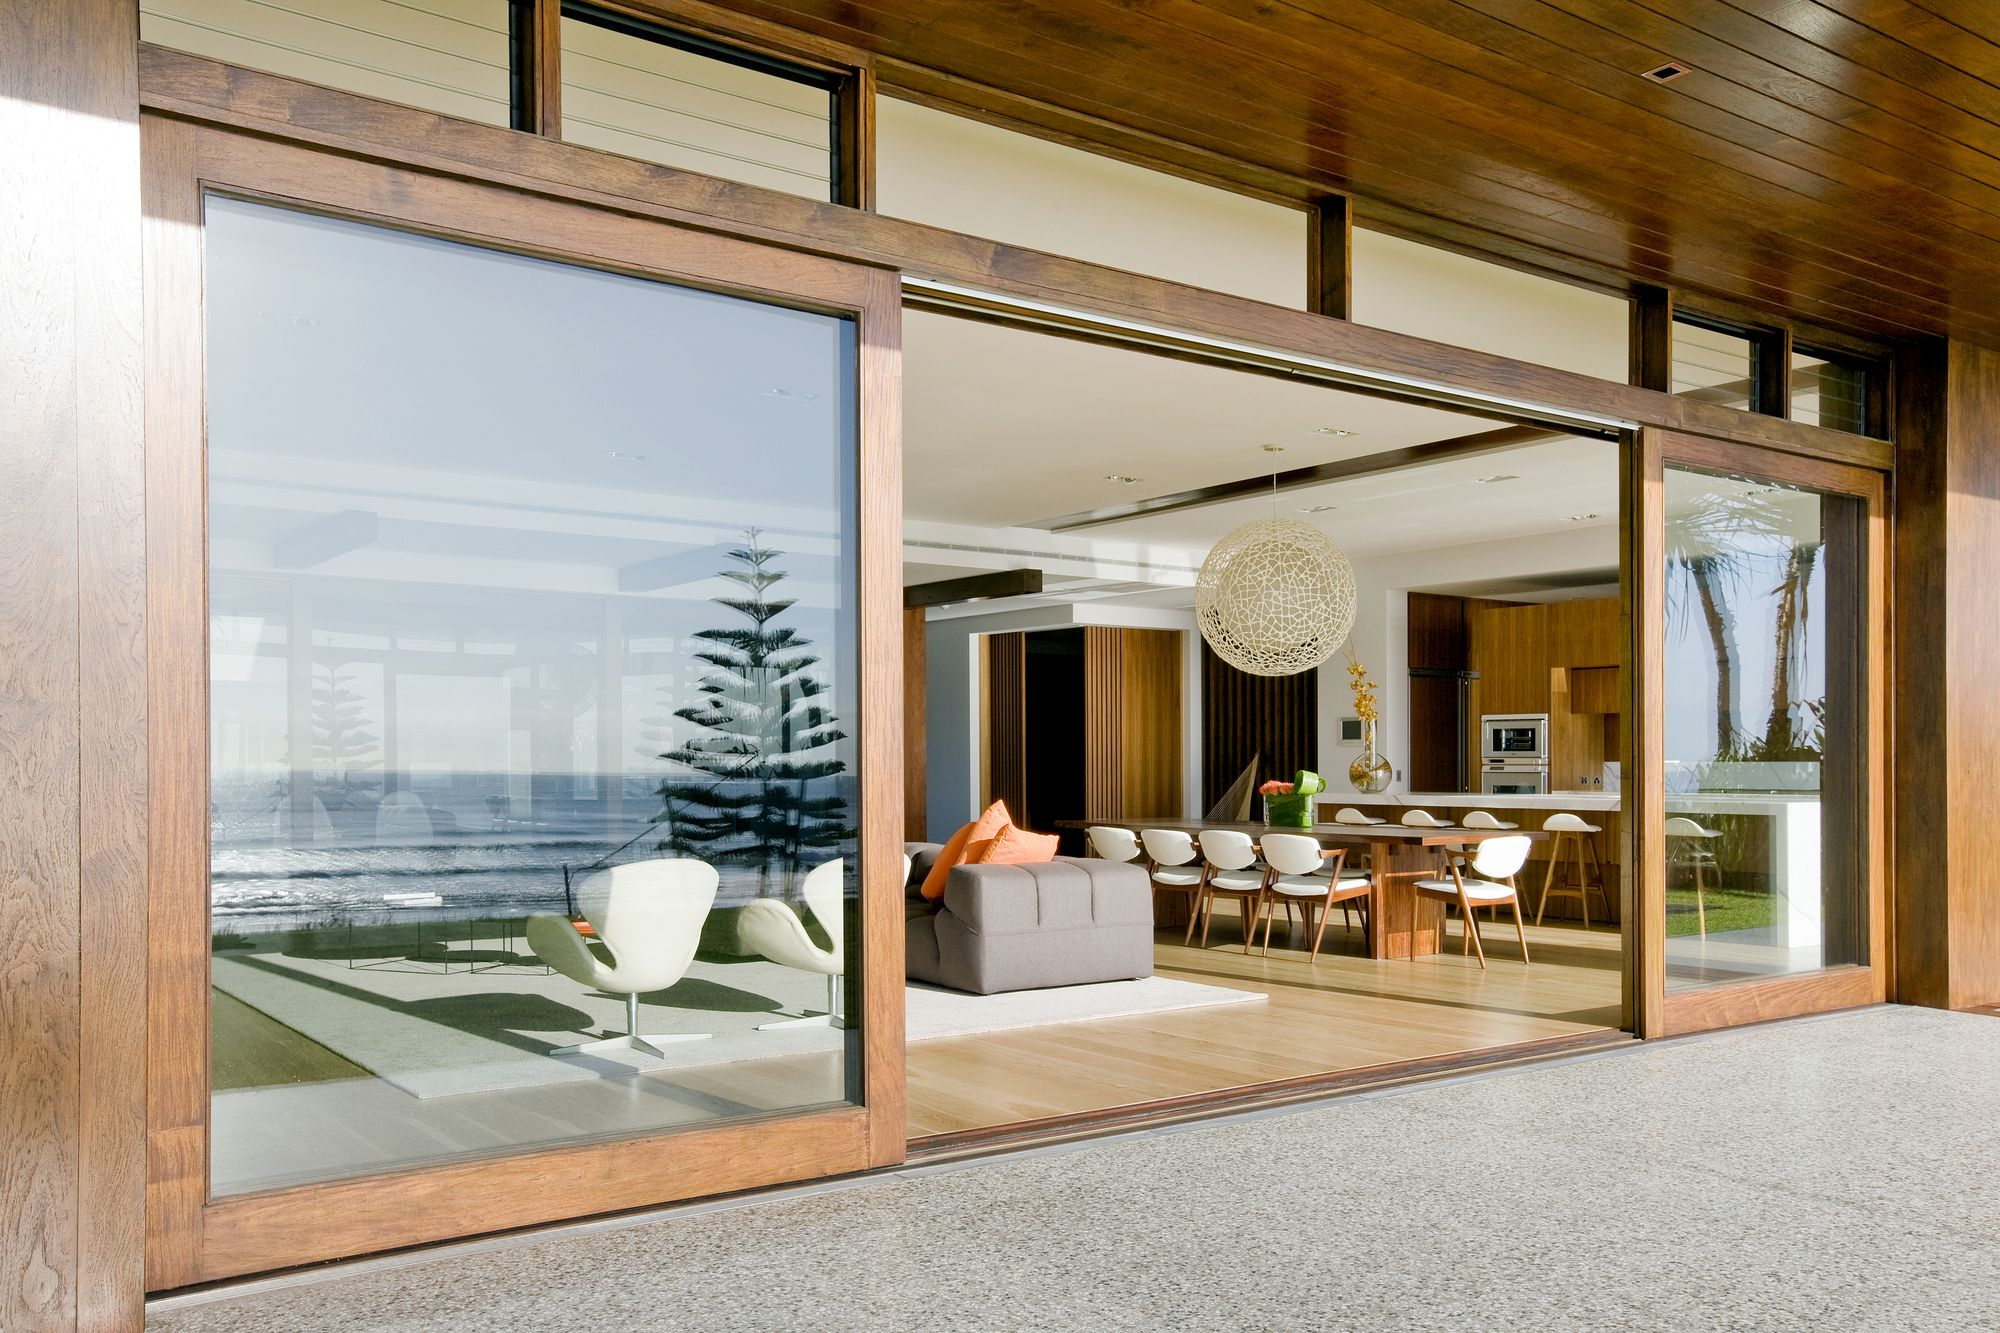 House design with sliding window  gallery of albatross  bgd architects    architects